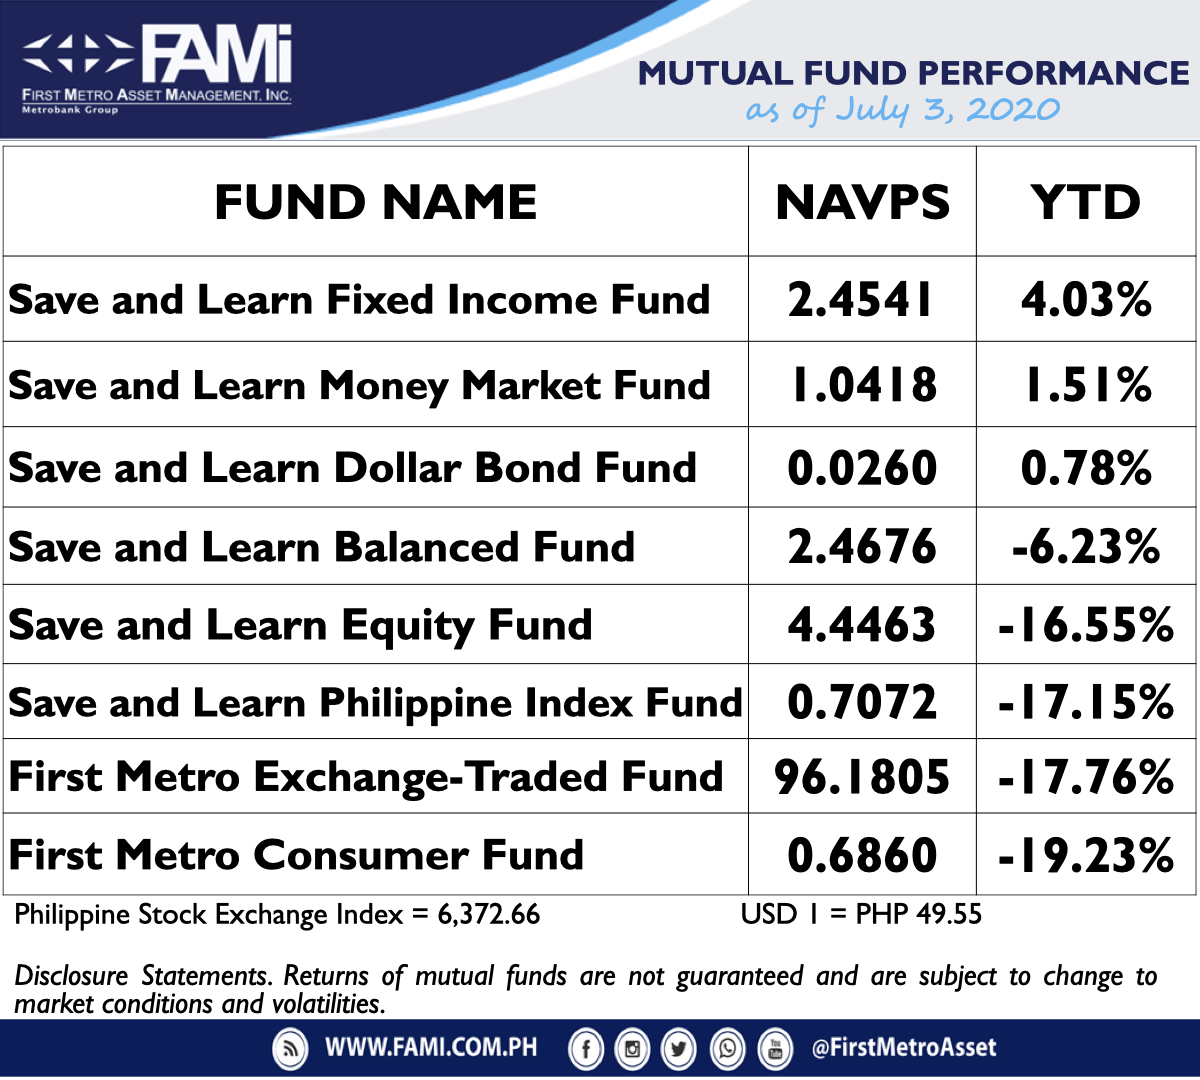 Here are our First Metro Asset Funds NAVPS as of July 3, 2020  #choosetoinvest #choosewisely #chooseFAMI https://t.co/RYmzRLhZWm